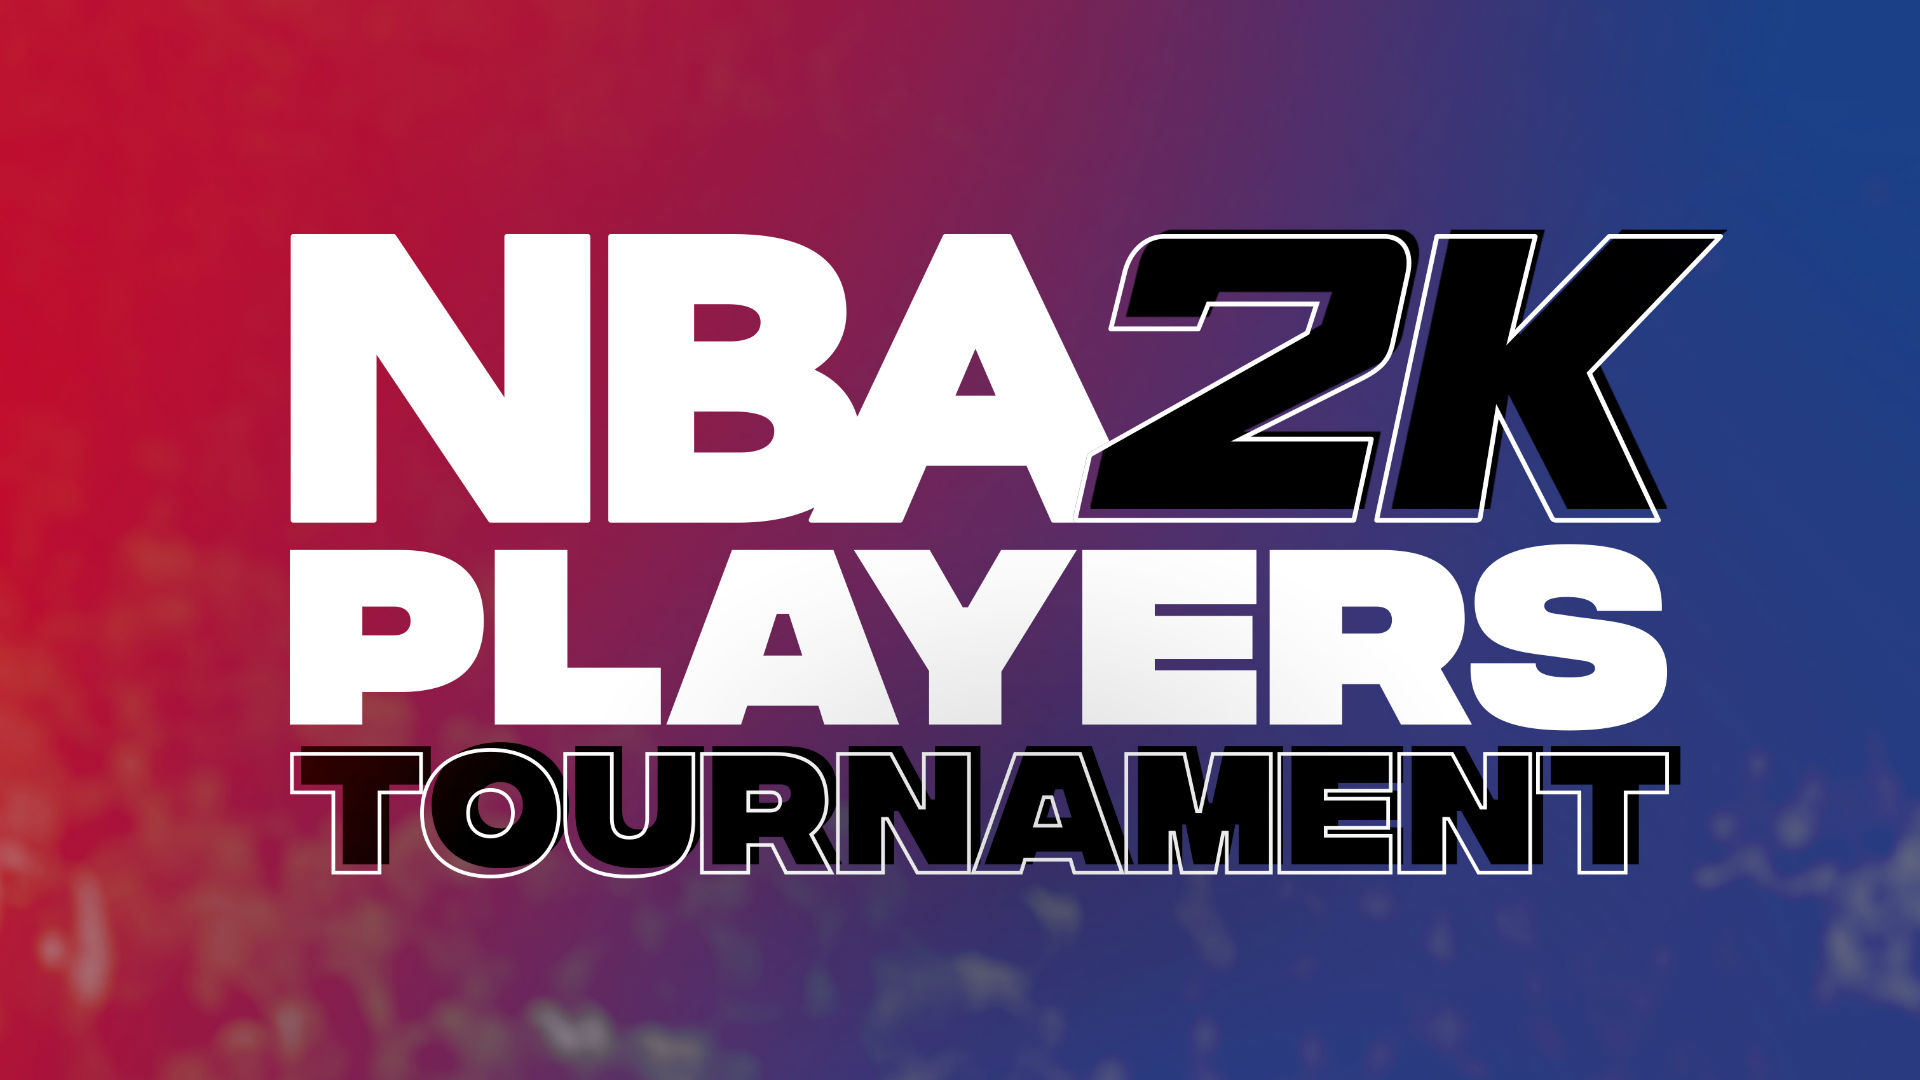 'NBA 2K' Players Tournament 2020: calendario completo de TV, soporte y lista de entradas para juegos en ESPN 29